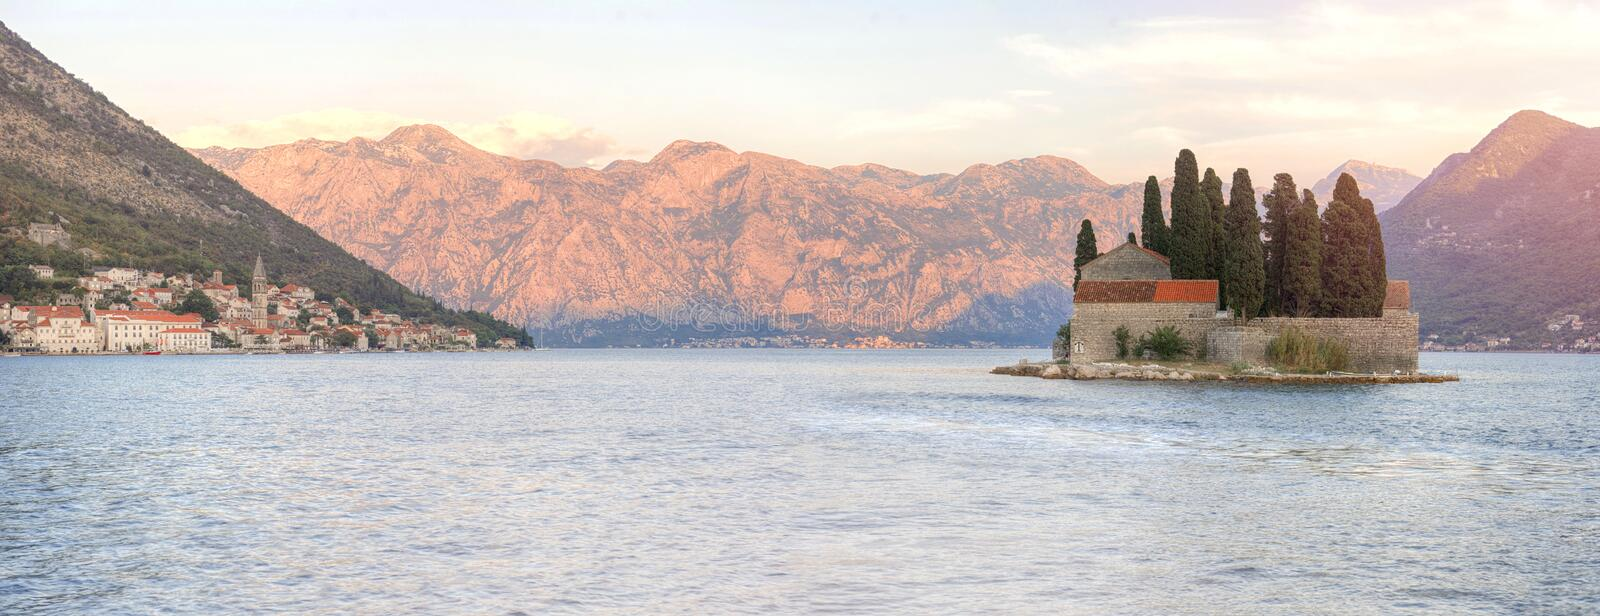 St. George island surprised at sunset, Montenegro royalty free stock photography